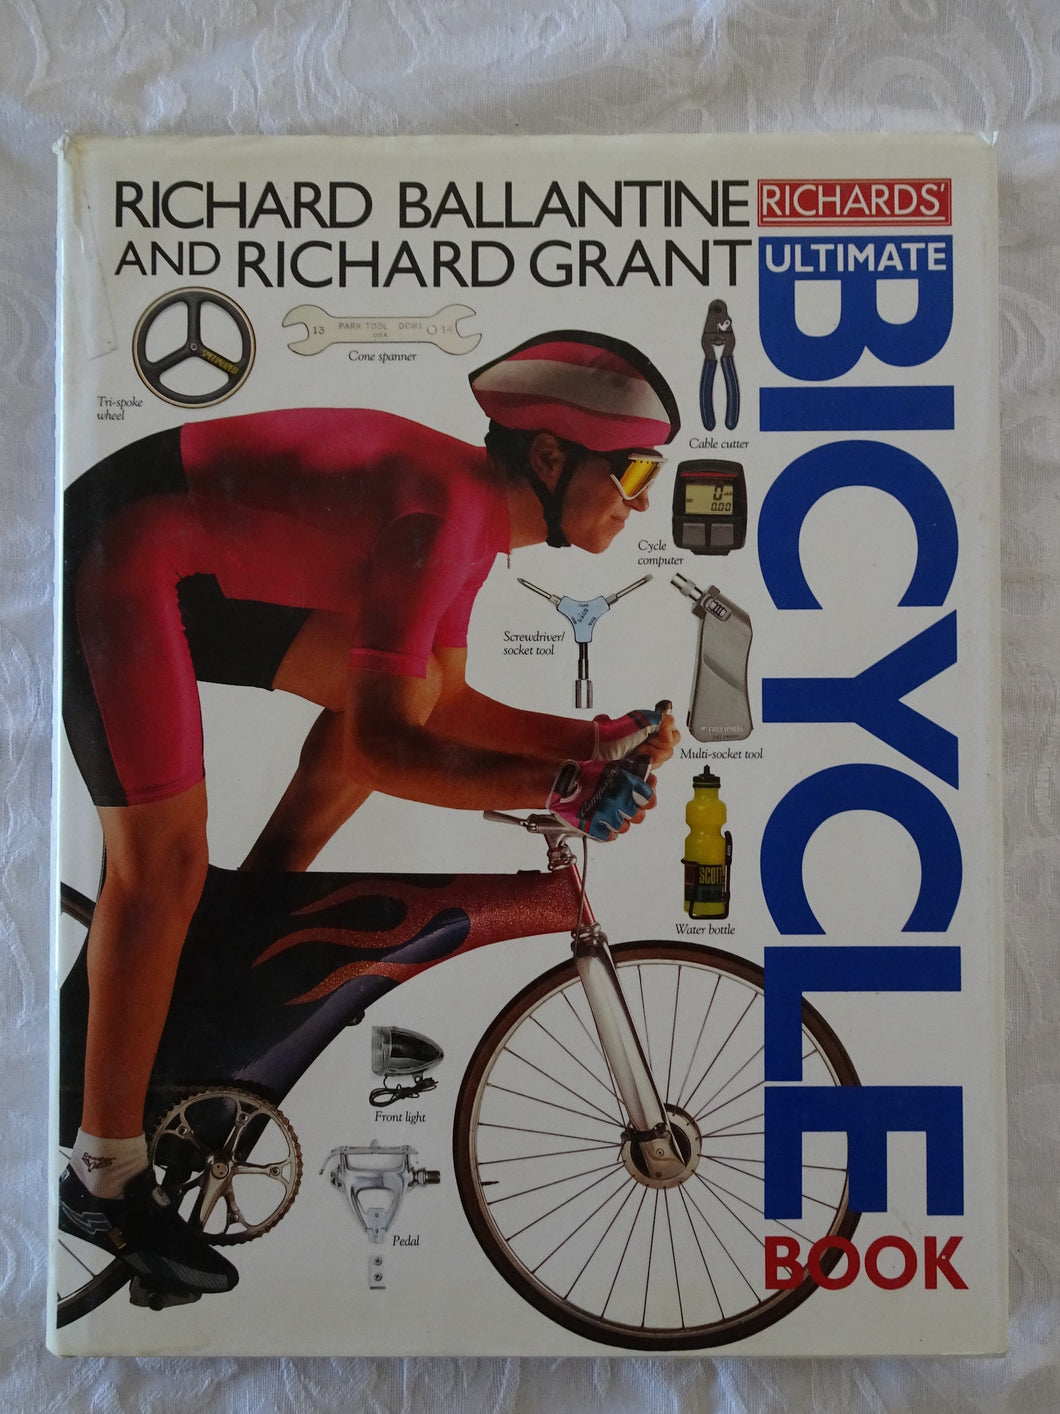 Richards' Ultimate Bicycle Book by Richard Ballantine and Richard Grant